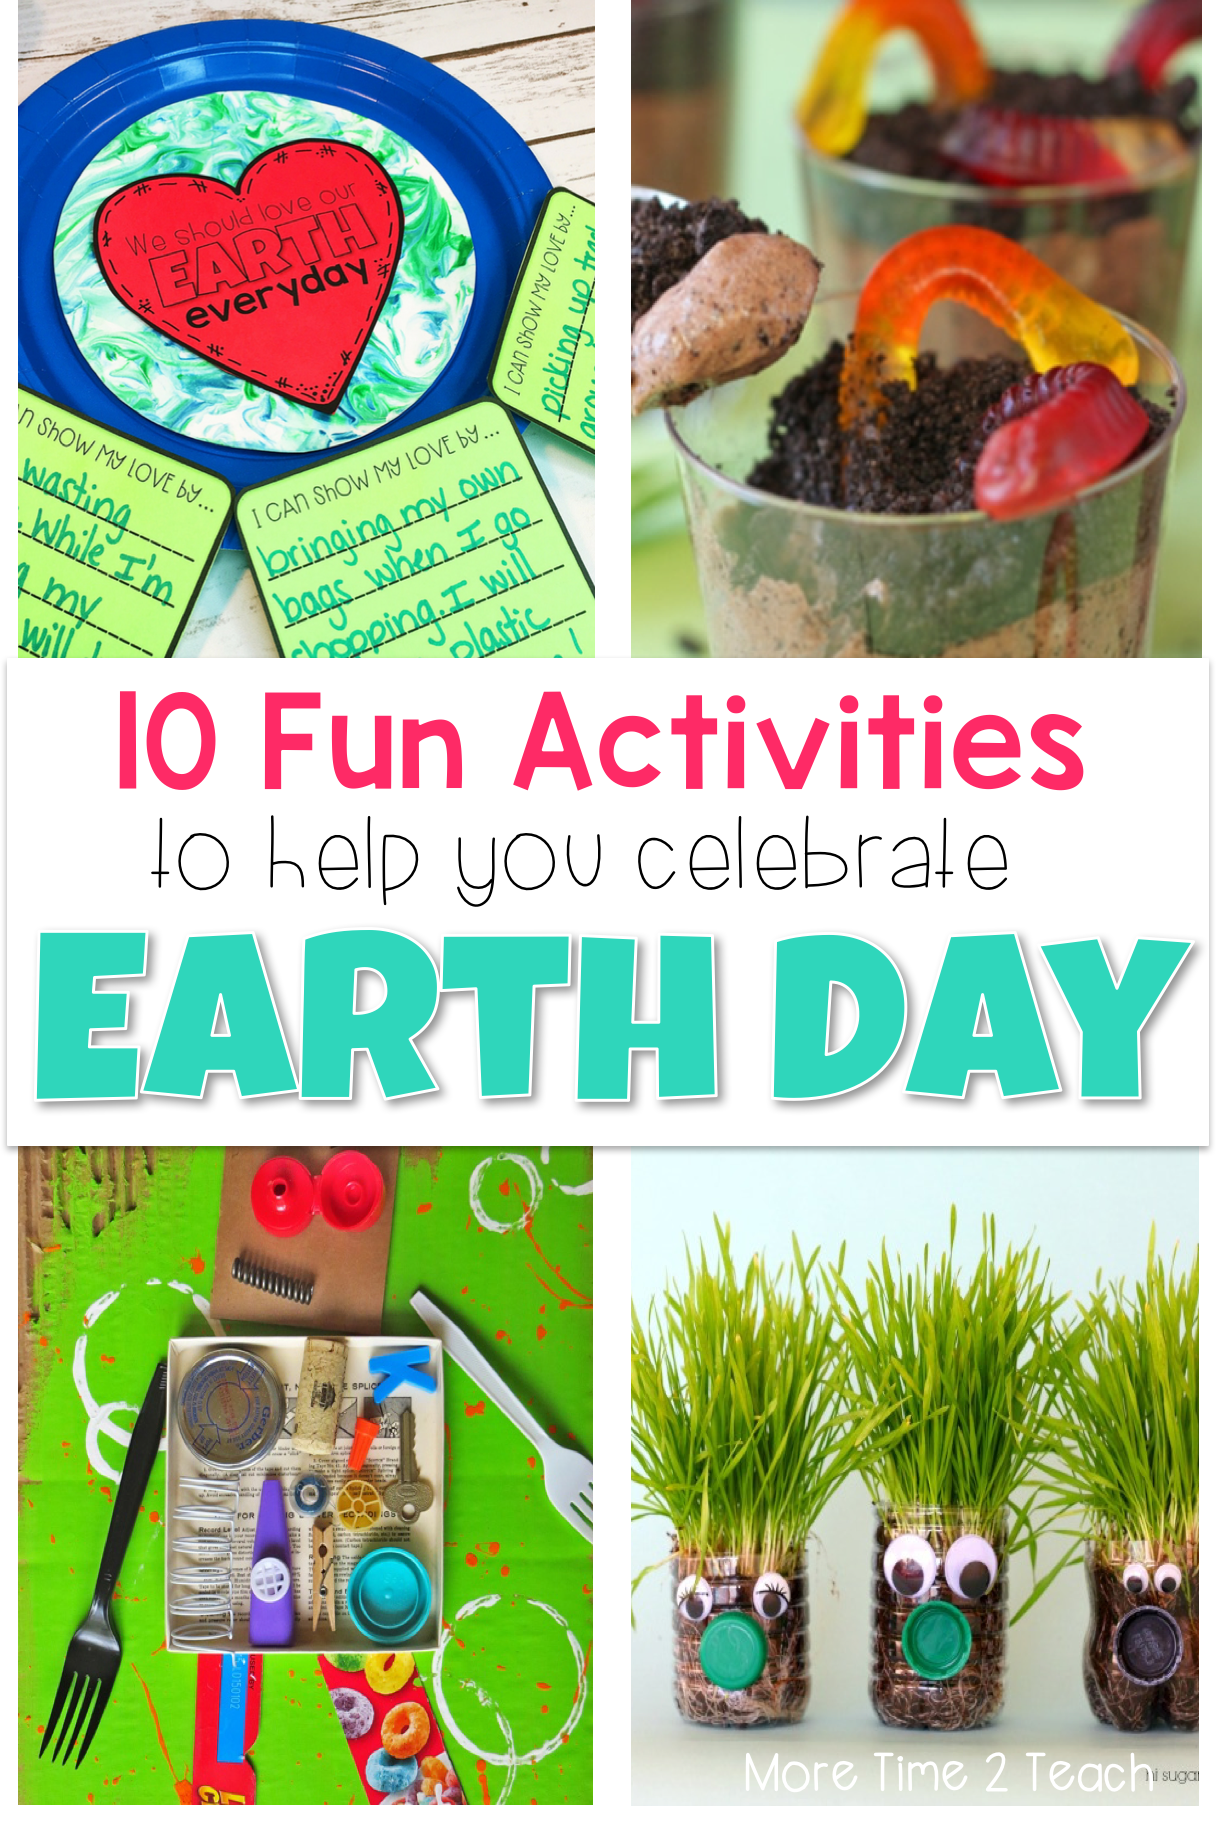 Earth Day should be celebrated EVERYDAY... With these FUN and CREATIVE ideas your kids will have a blast celebrating our beautiful planet! There's plenty of activities to last you more than a week.